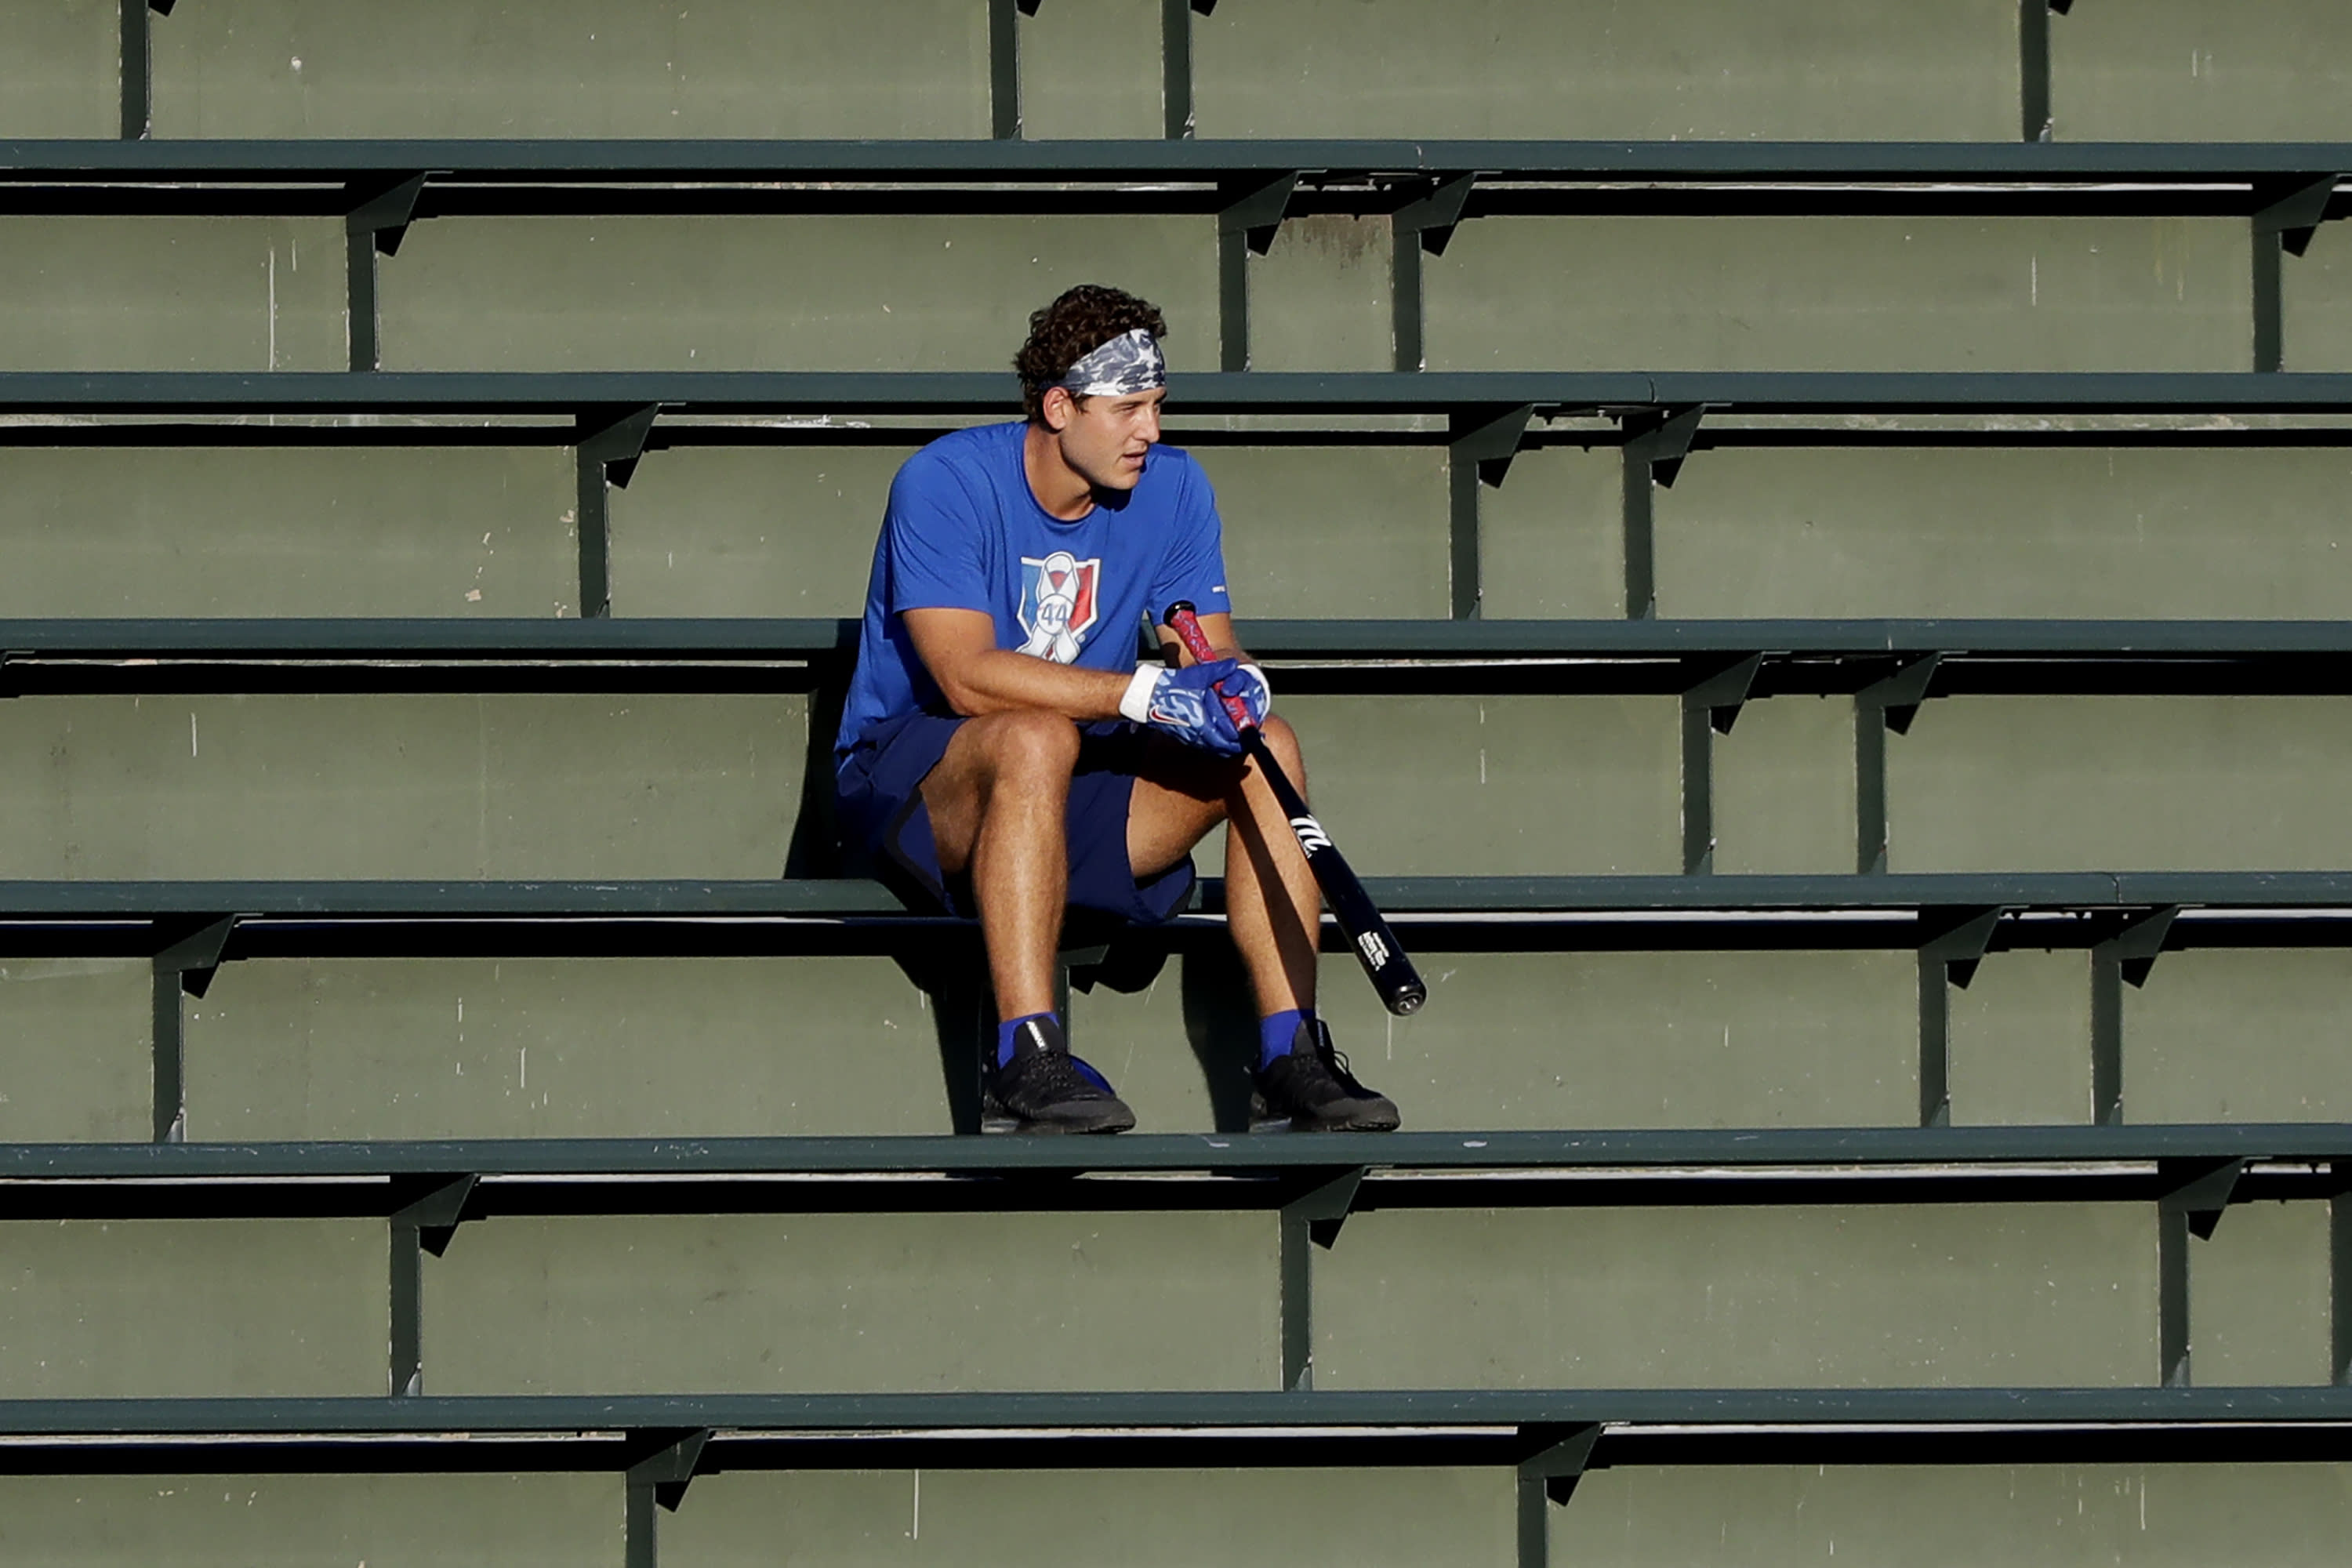 Chicago Cubs infielder Anthony Rizzo watches teammates during baseball practice at Wrigley Field in Chicago, Friday, July 10, 2020. (AP Photo/Nam Y. Huh)